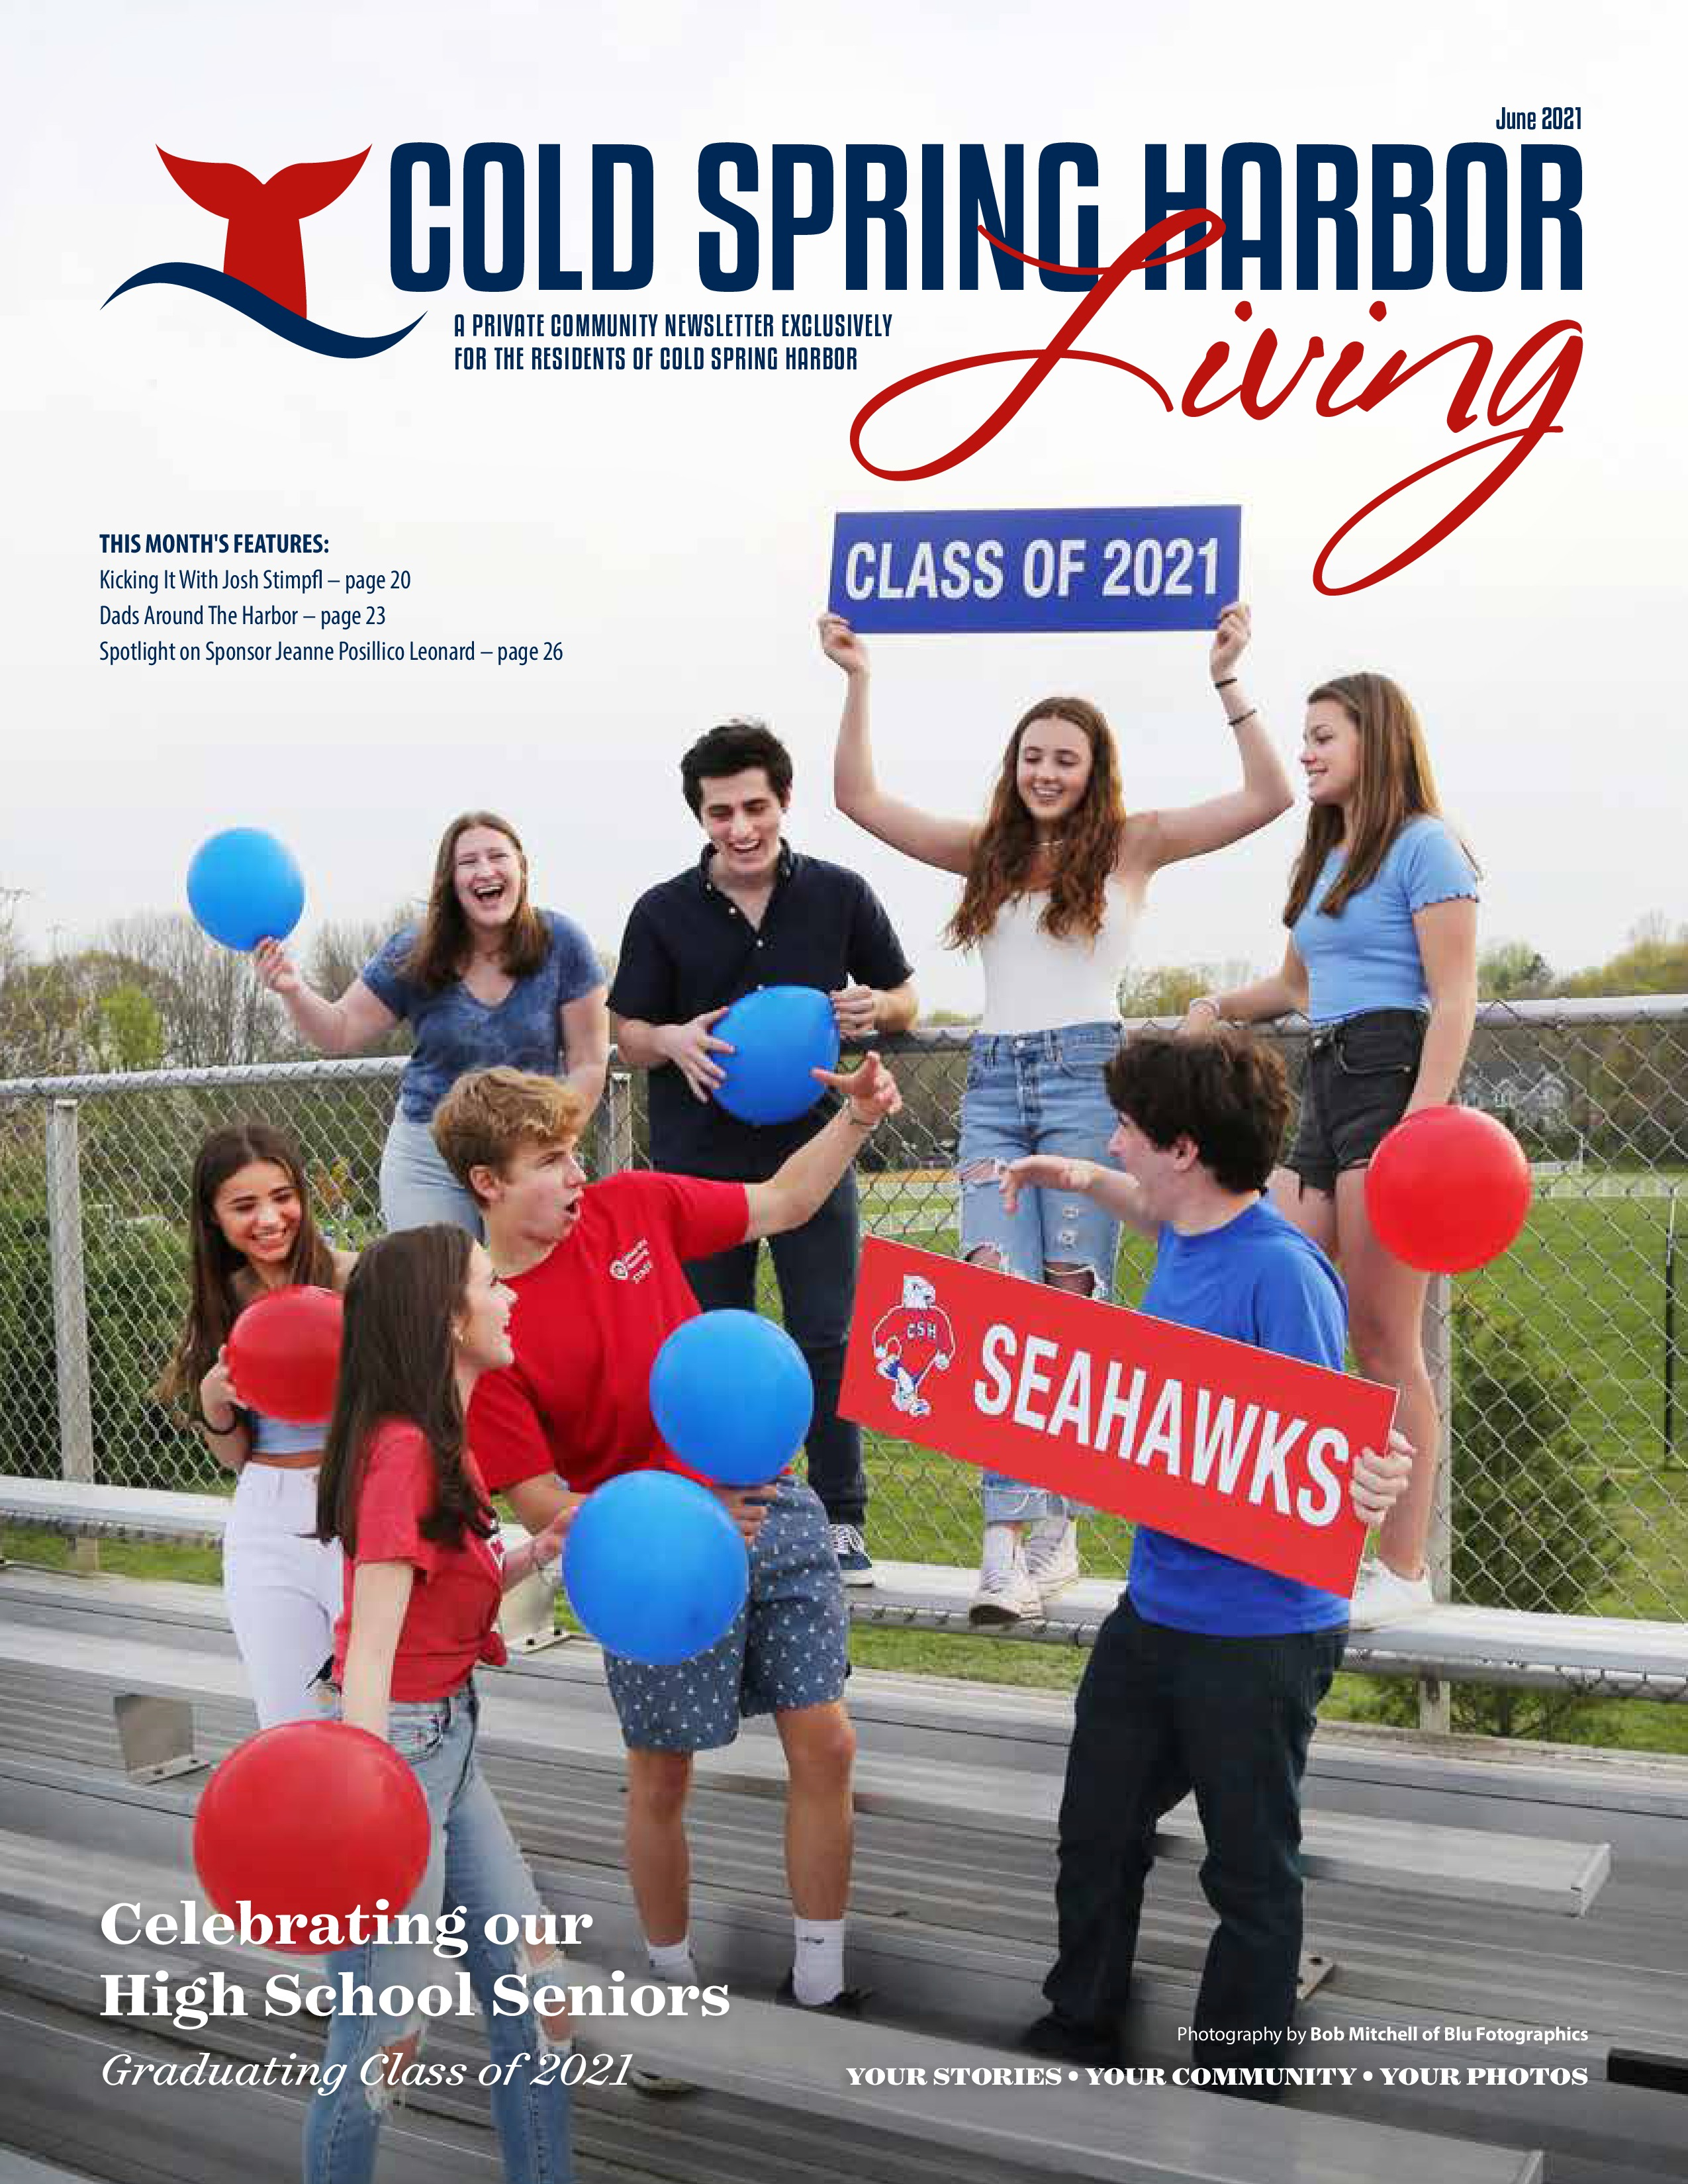 Cold Spring Harbor Living 2021-06-01